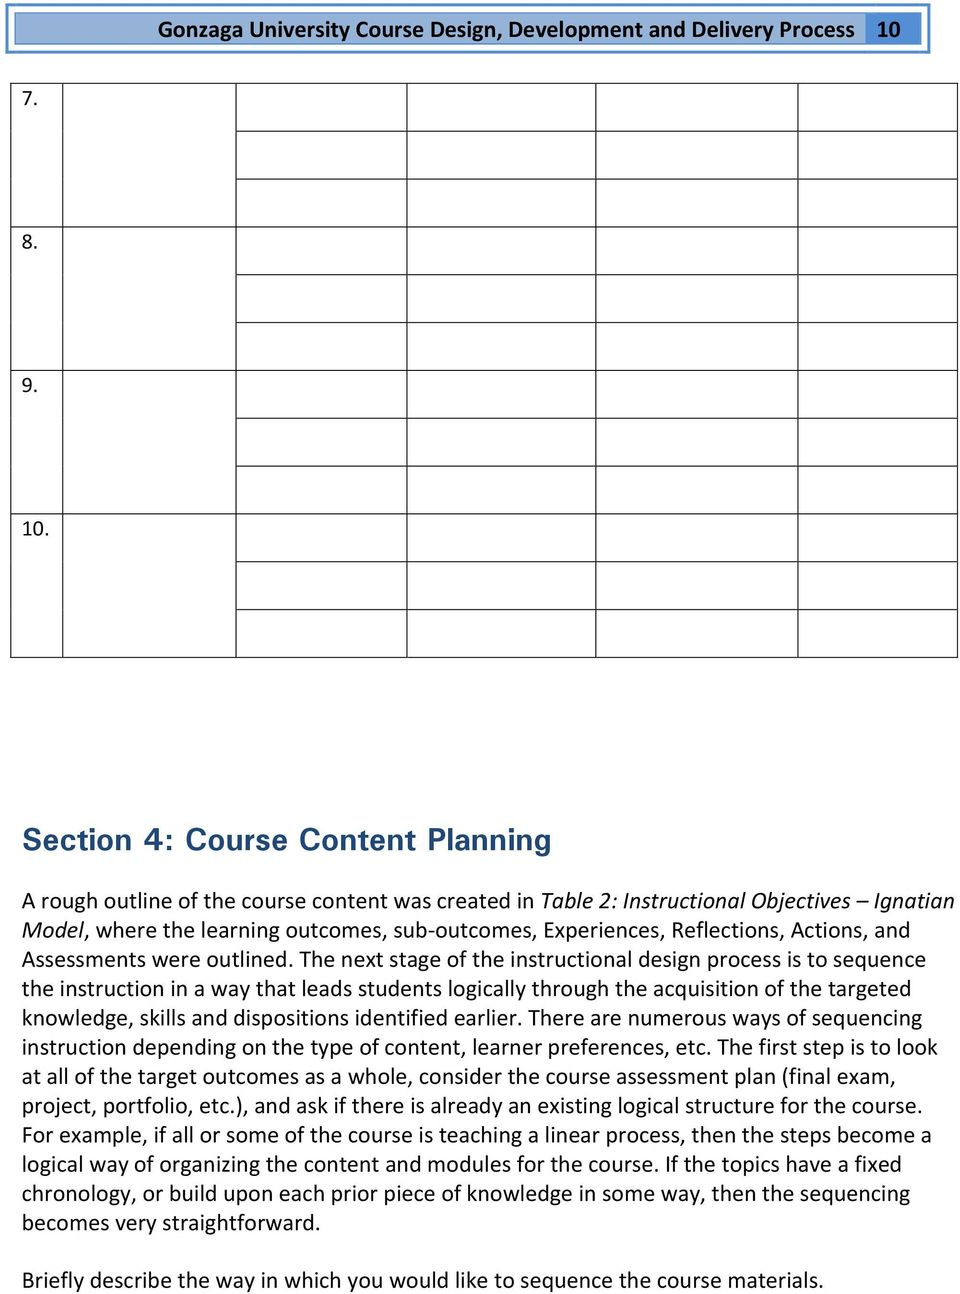 Section 4: Course Content Planning A rough outline of the course content was created in Table 2: Instructional Objectives Ignatian Model, where the learning outcomes, sub outcomes, s, s, s, and s